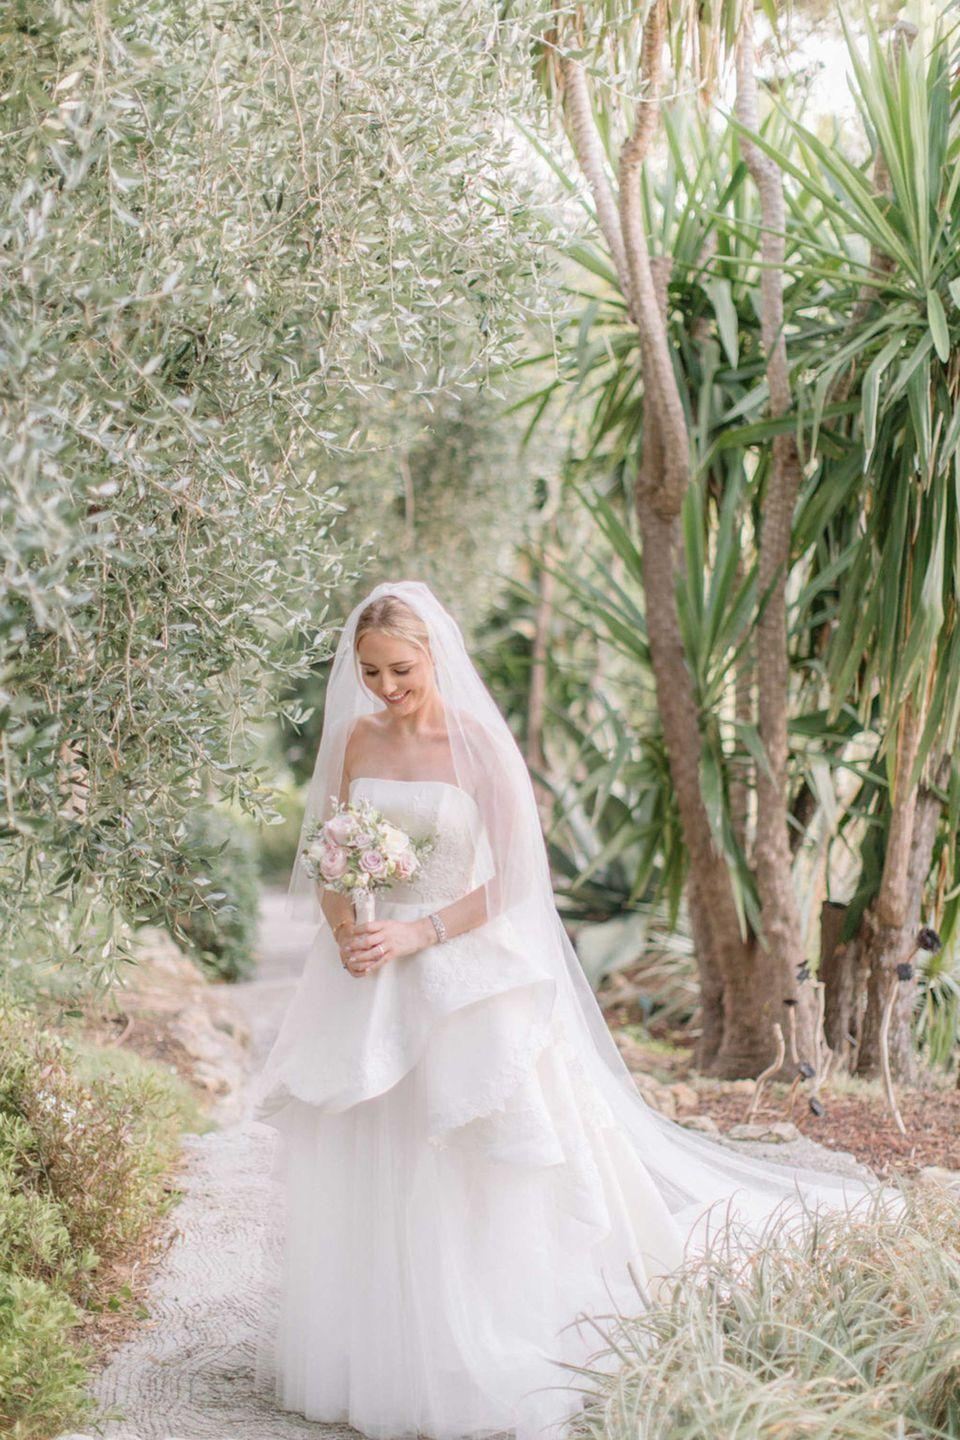 <p><strong>Wedding dress and veil:</strong> Caroline Castigliano </p><p><strong>Bracelet:</strong> Vintage Cartier, kindly lent by G Collins & Sons</p><p><strong>Earrings and ring:</strong> G Collins & Sons</p><p><strong>Shoes:</strong> Prada</p>